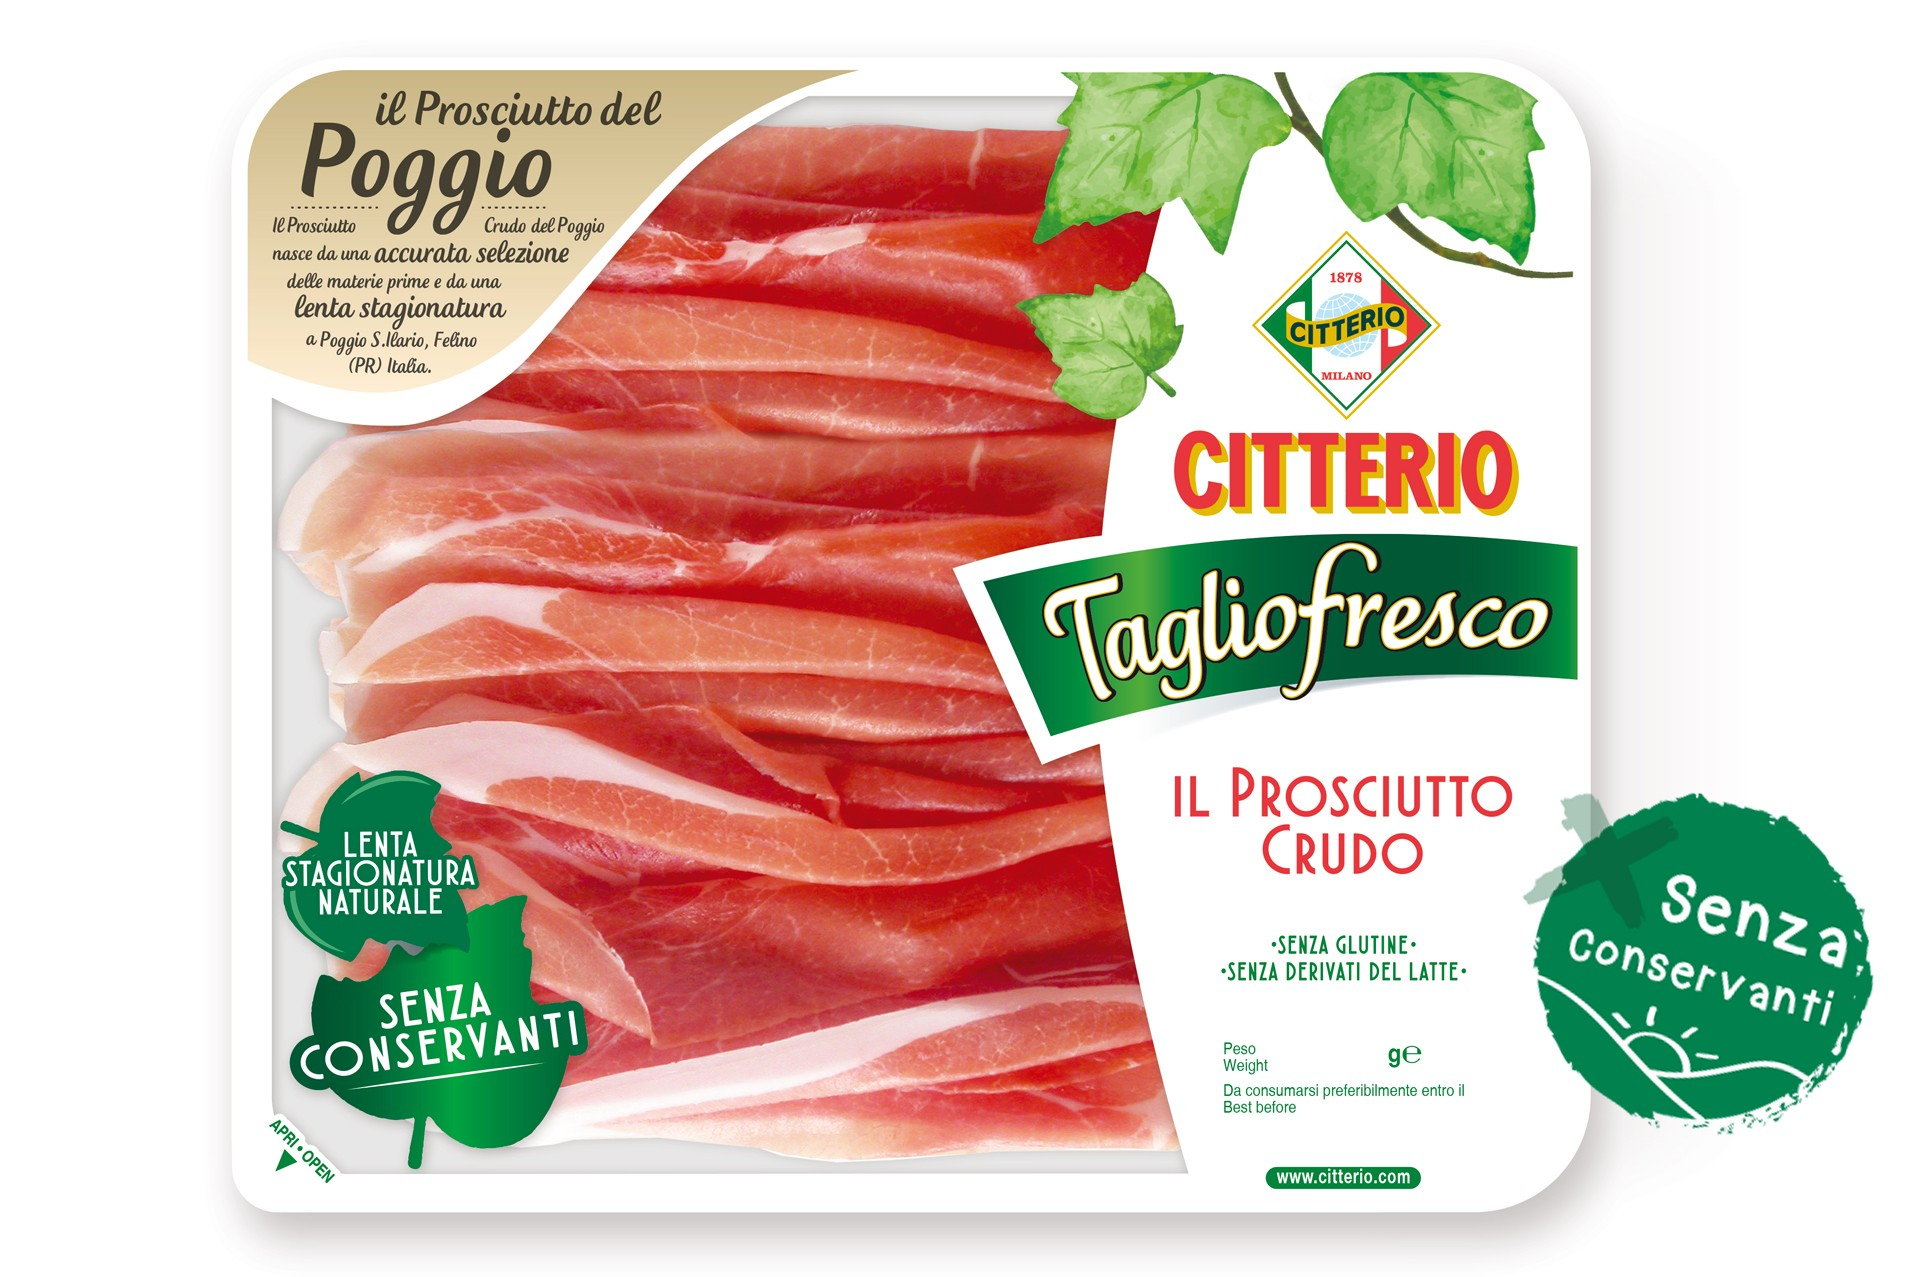 ALL OUR PROSCIUTTO CRUDO PRODUCTS ARE WITHOUT PRESERVATIVES